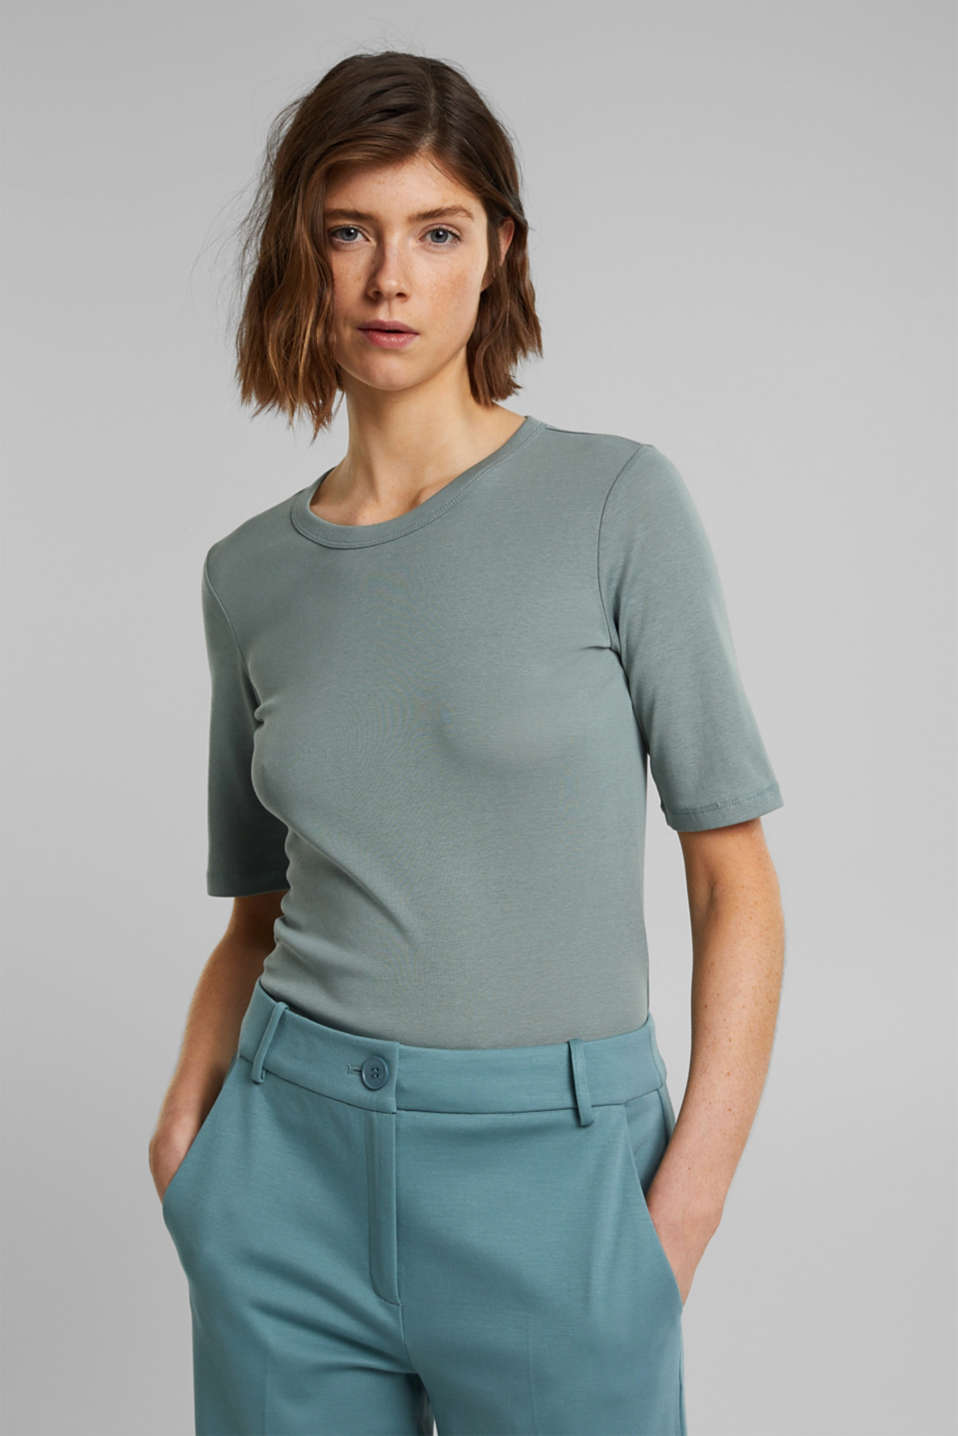 Esprit - T-shirt van 100% organic cotton